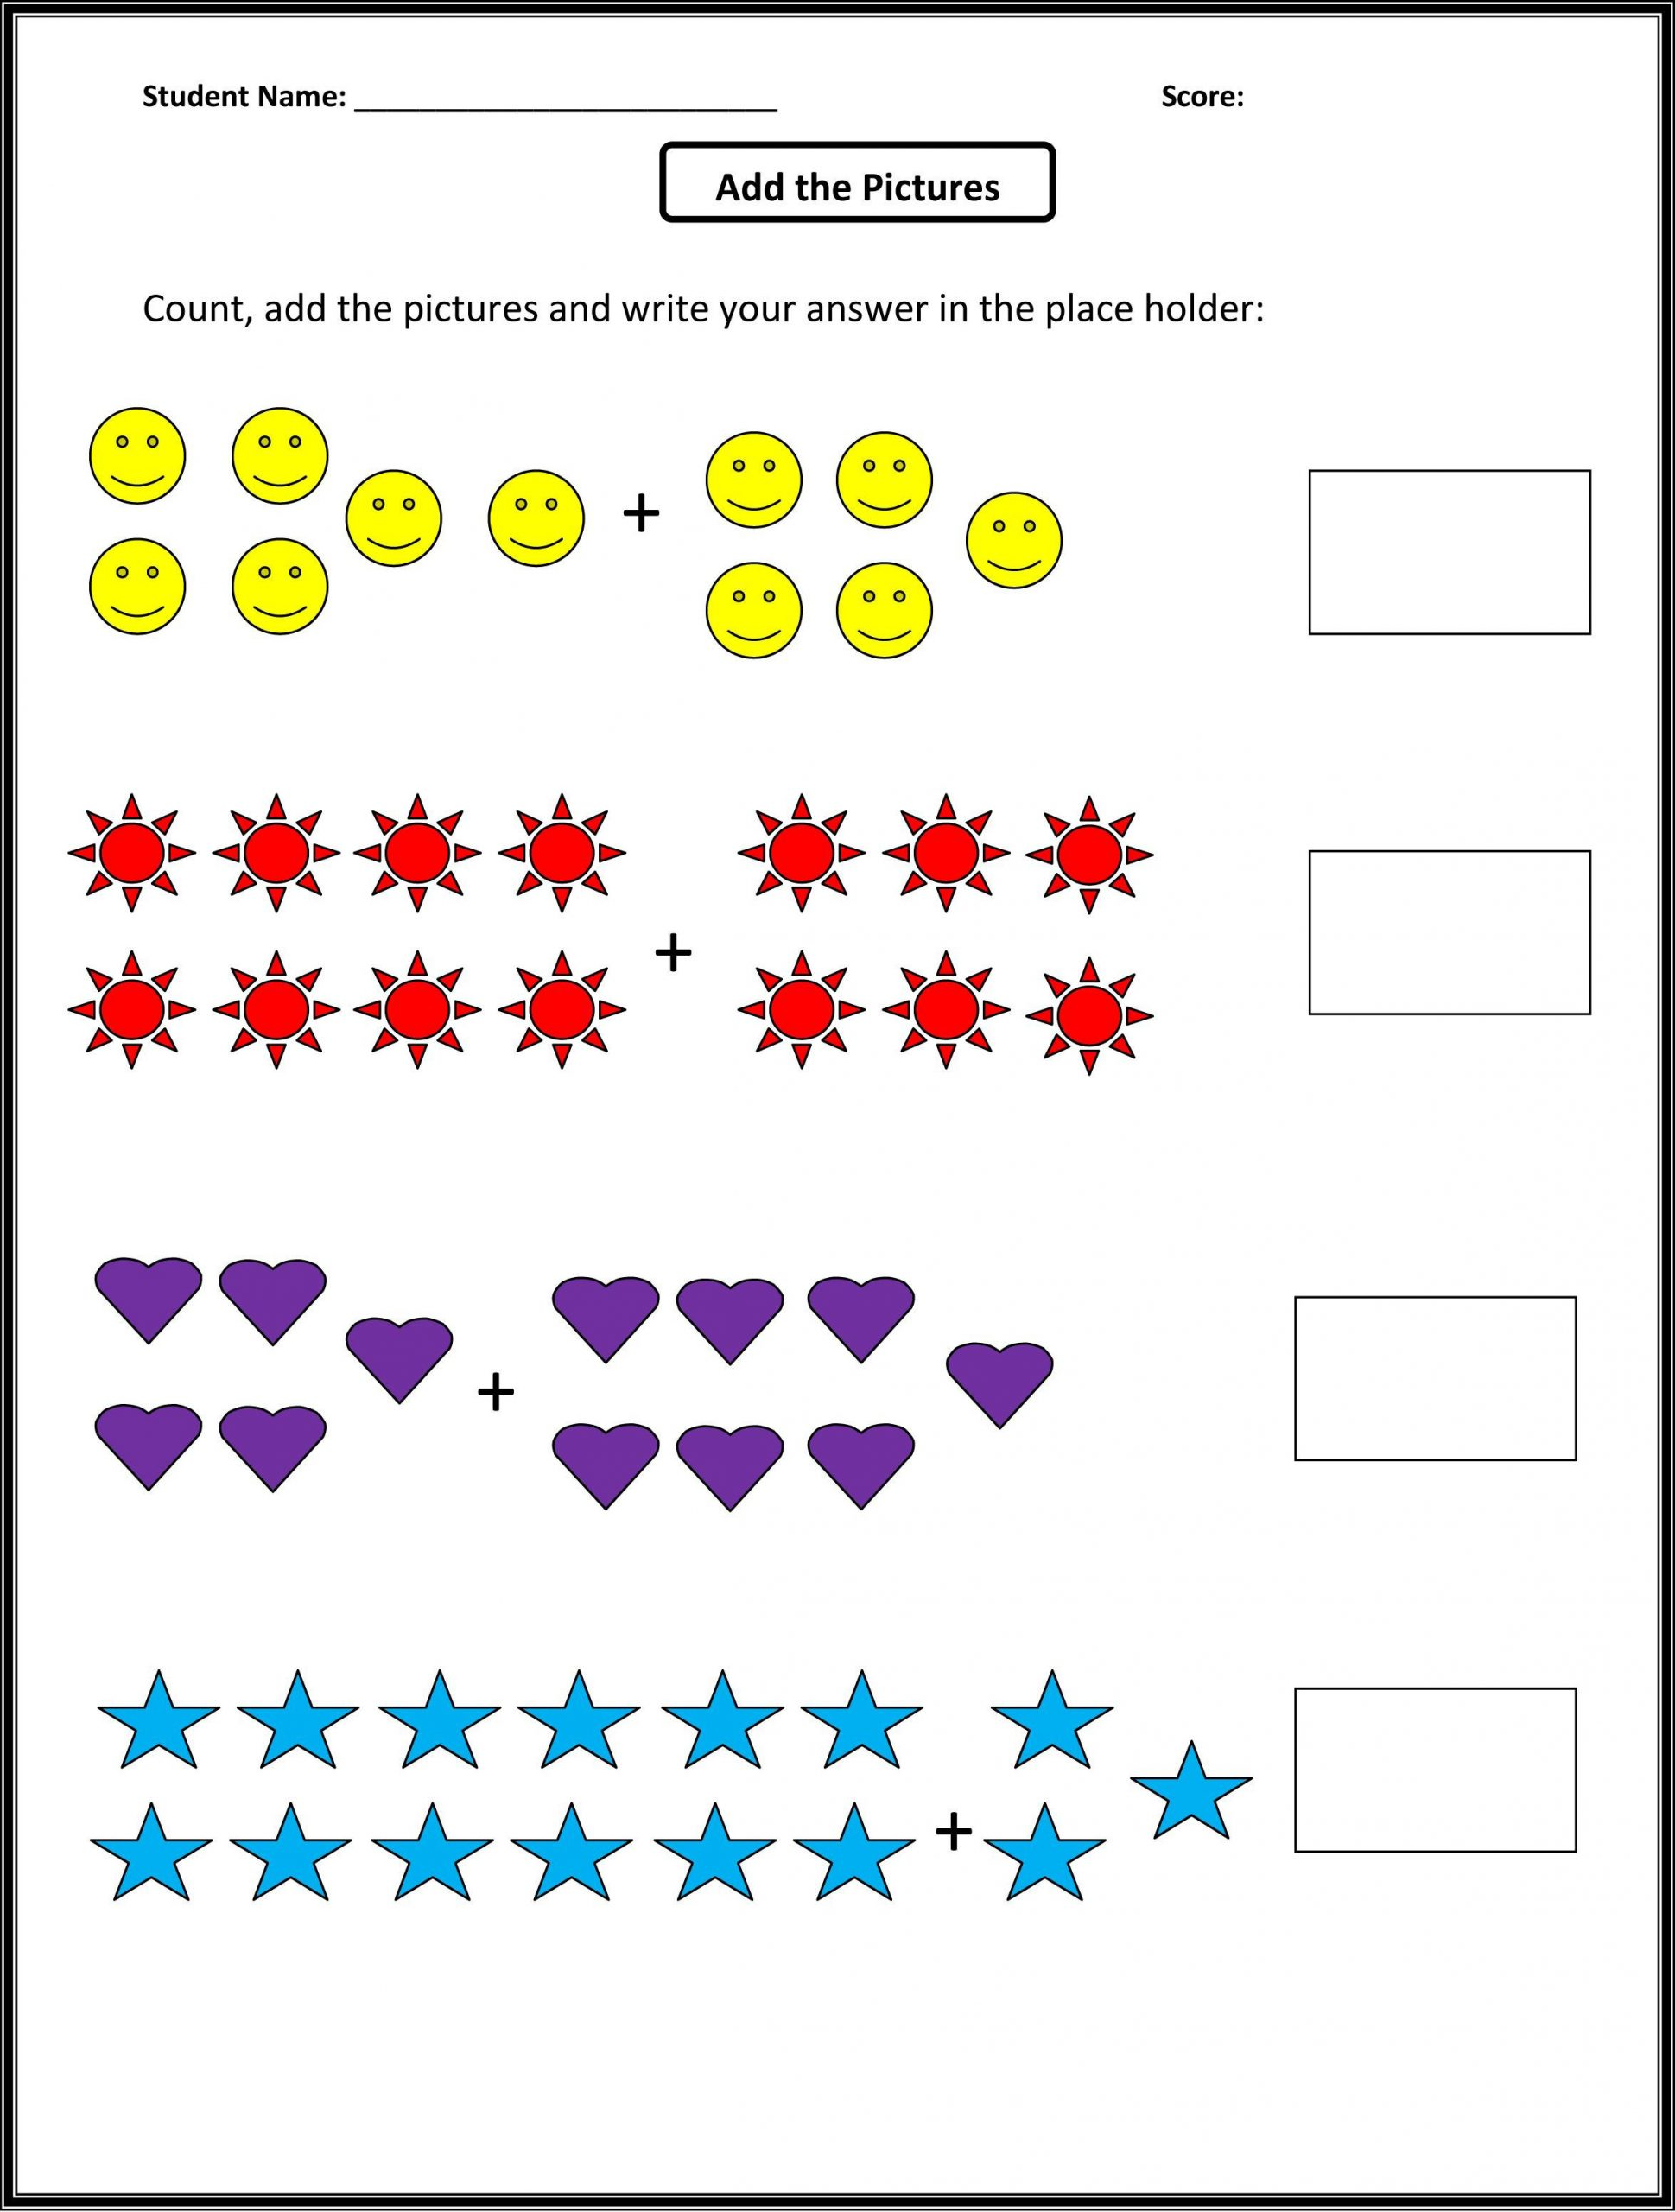 Subtraction Worksheets 1st Grade 1st Grade Math Worksheets Best Coloring Pages for Kids